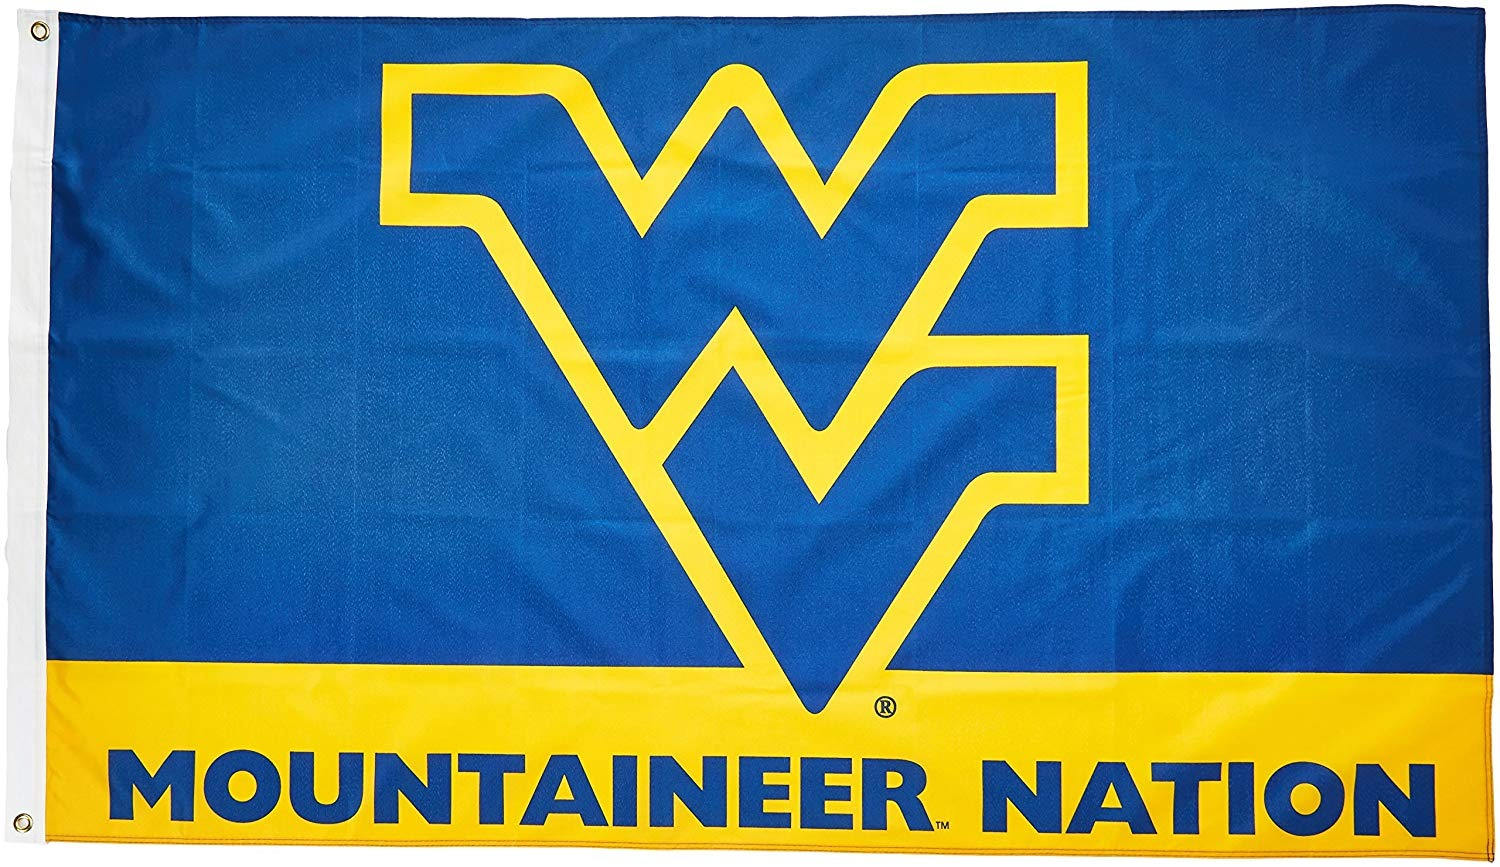 Details about West Virginia Mountaineers NATION 3x5 Flag BSI 95112 Outdoor  Banner University